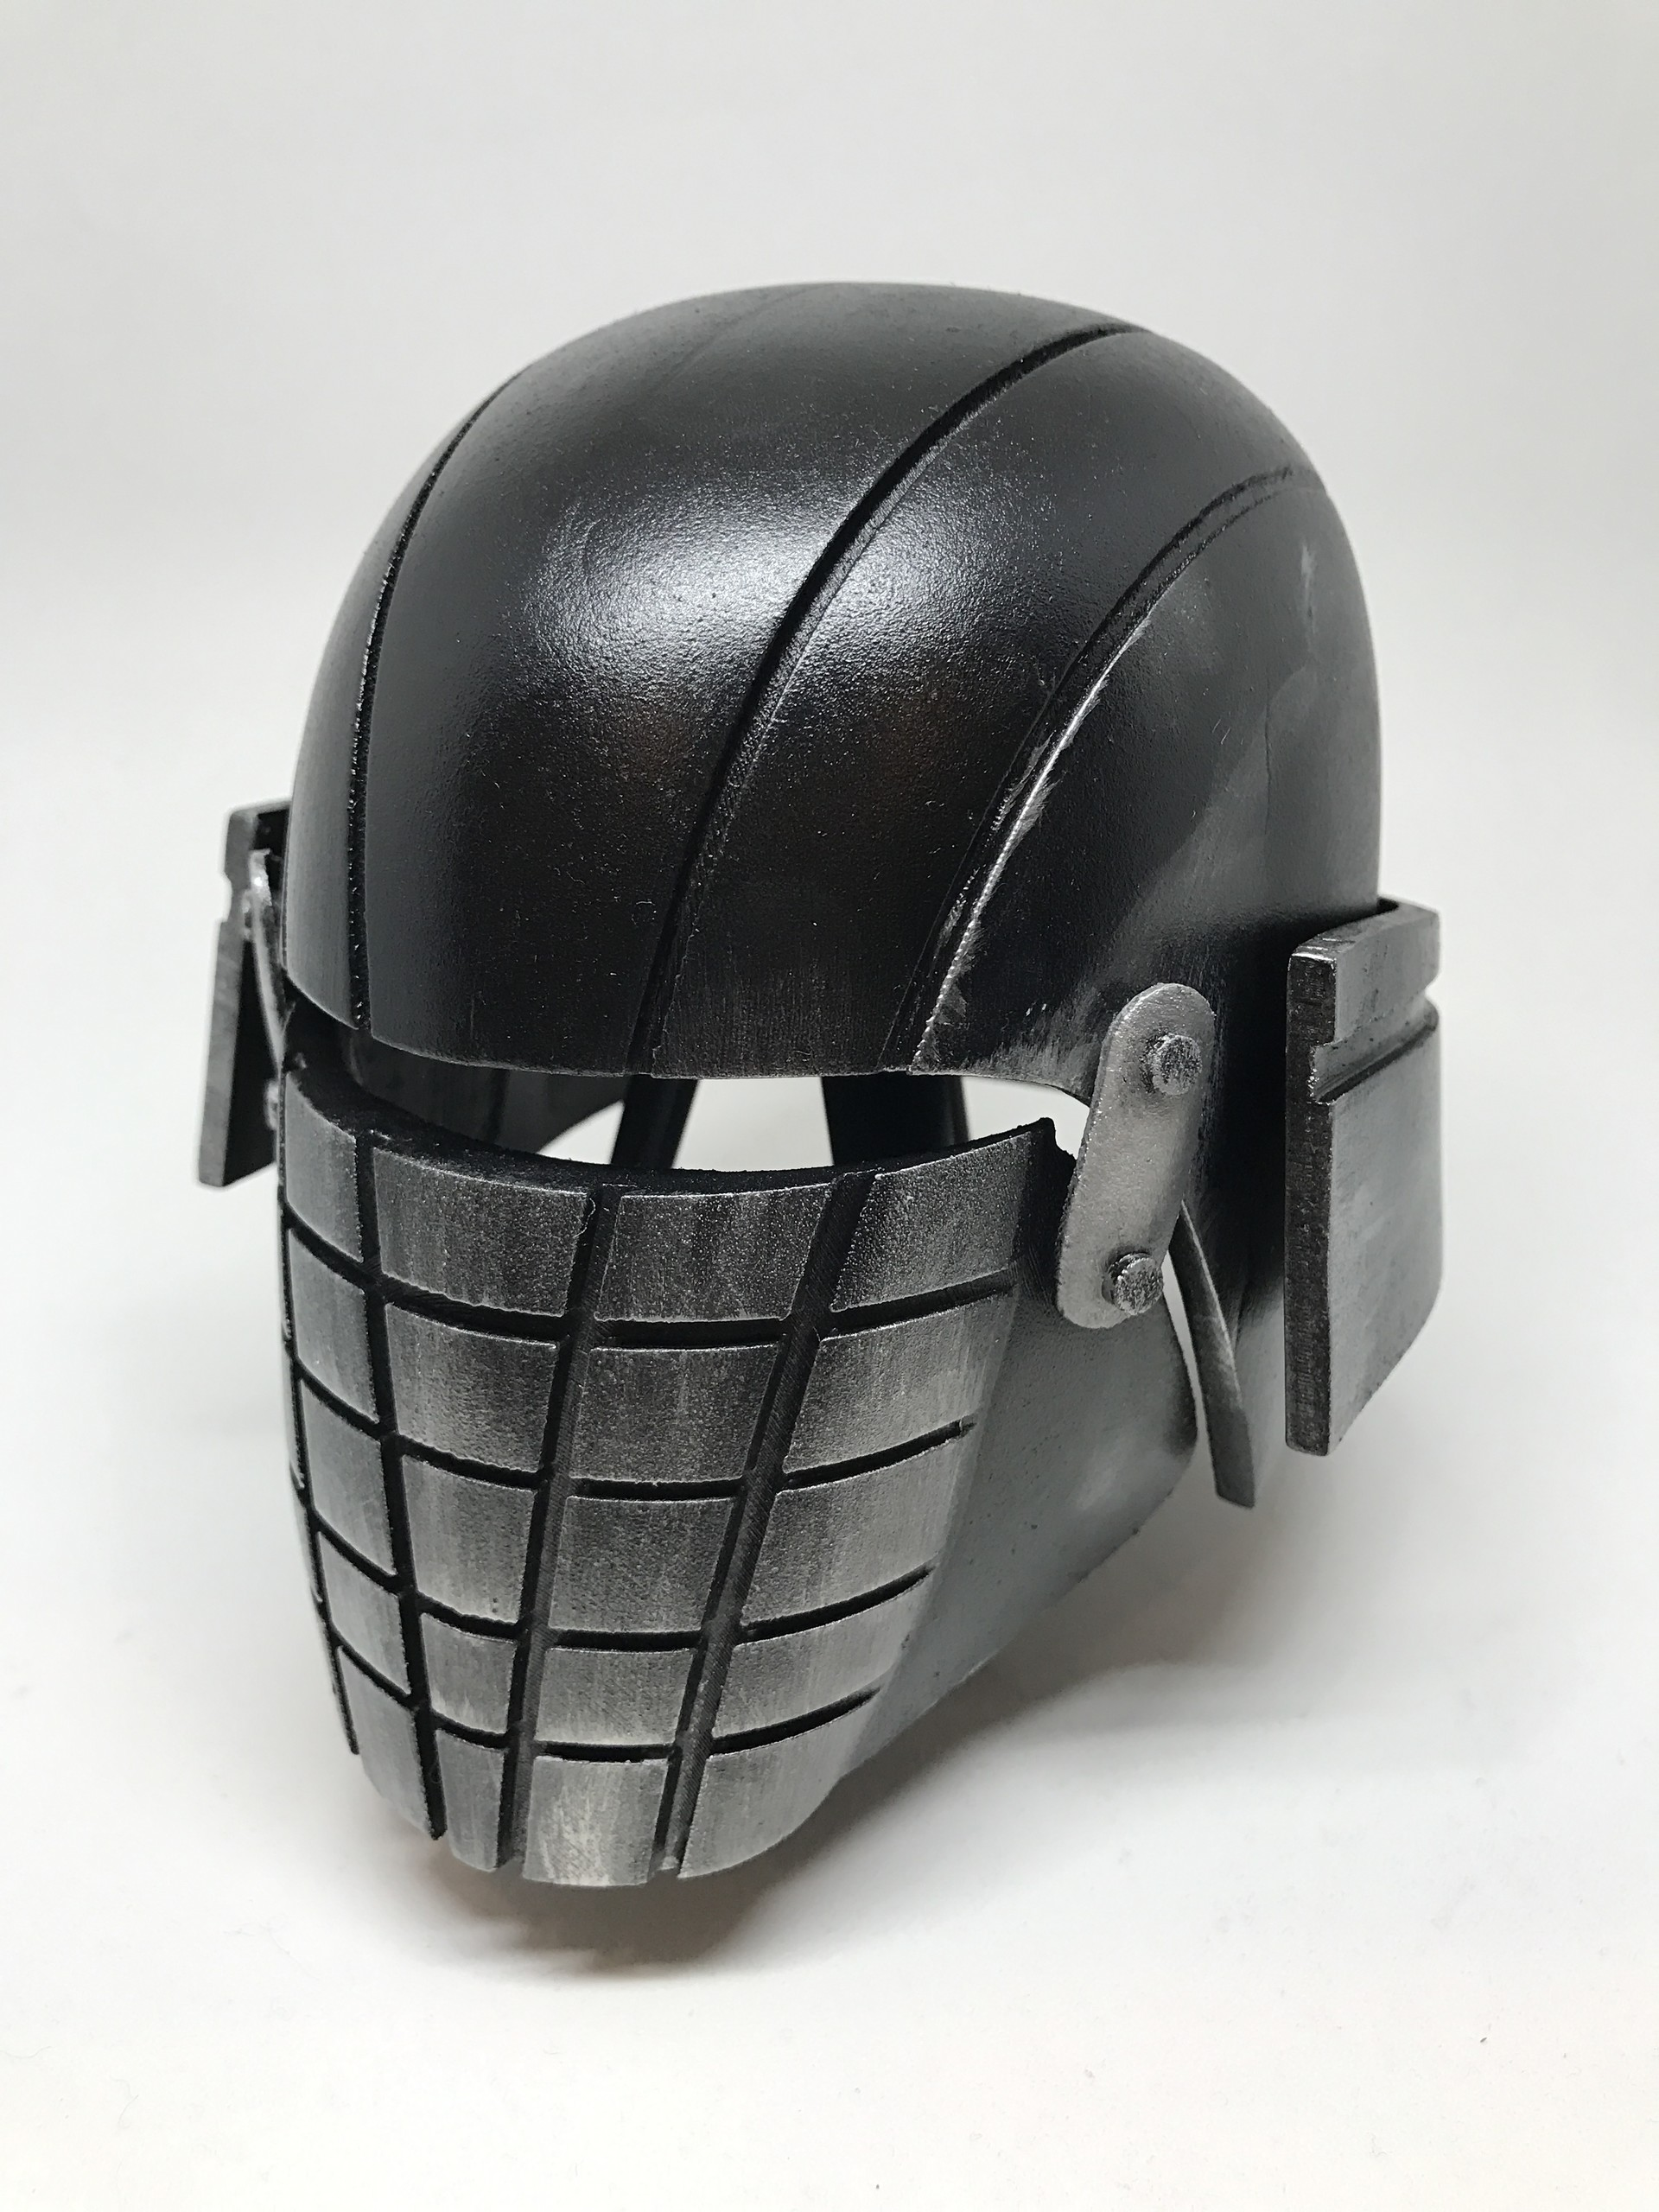 Image result for knight of ren mask